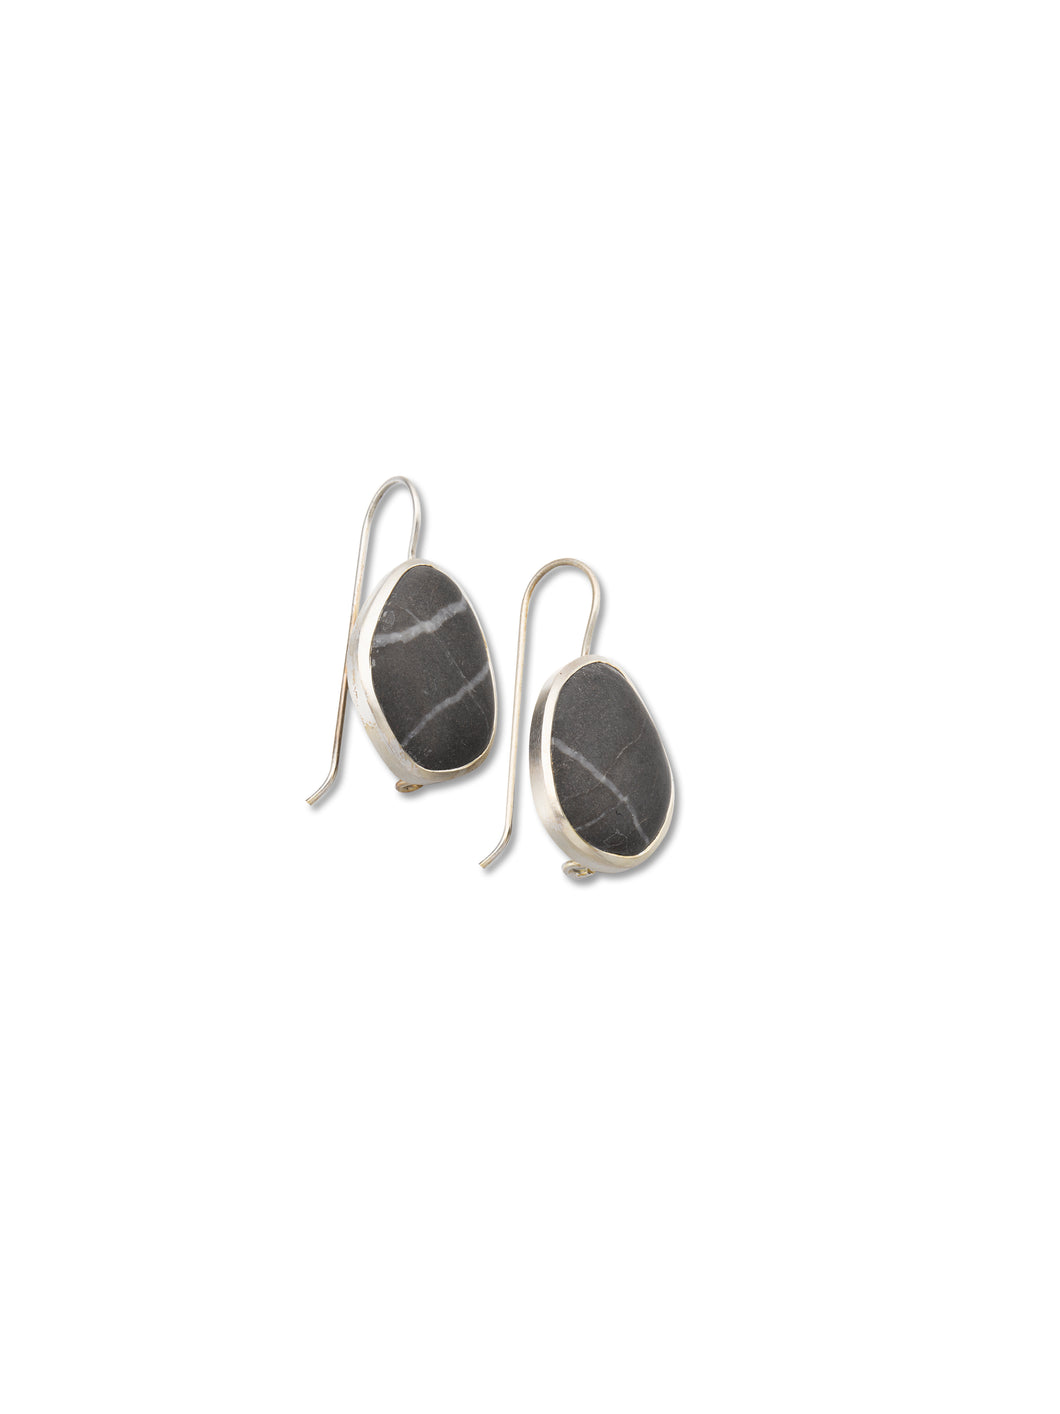 Black River Stone Organic Drop Earring